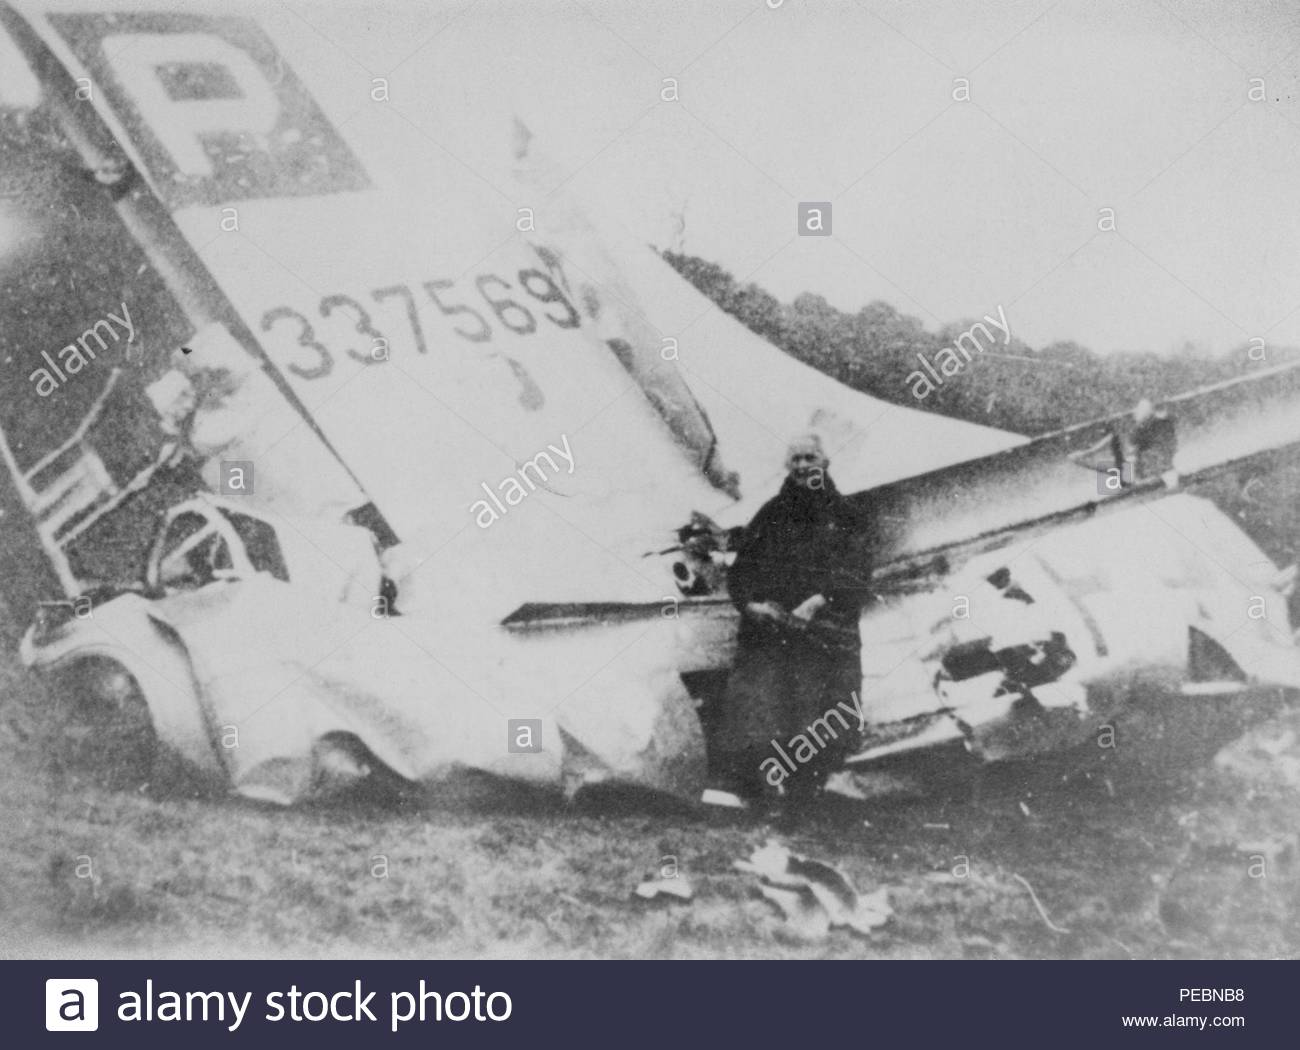 An unknown man poses in front of a downed B-17 Flying Fortress, tail number 4337569, following a dogfight which occurred, Dec. 24, 1944. The aircraft's crew included 1st Lt. Vernal Cuno Becker, the tail gunner on the mission, and great-uncle of current U.S. Air Force Chief Master Sgt. James McCloskey. (Courtesy photo) - Stock Image